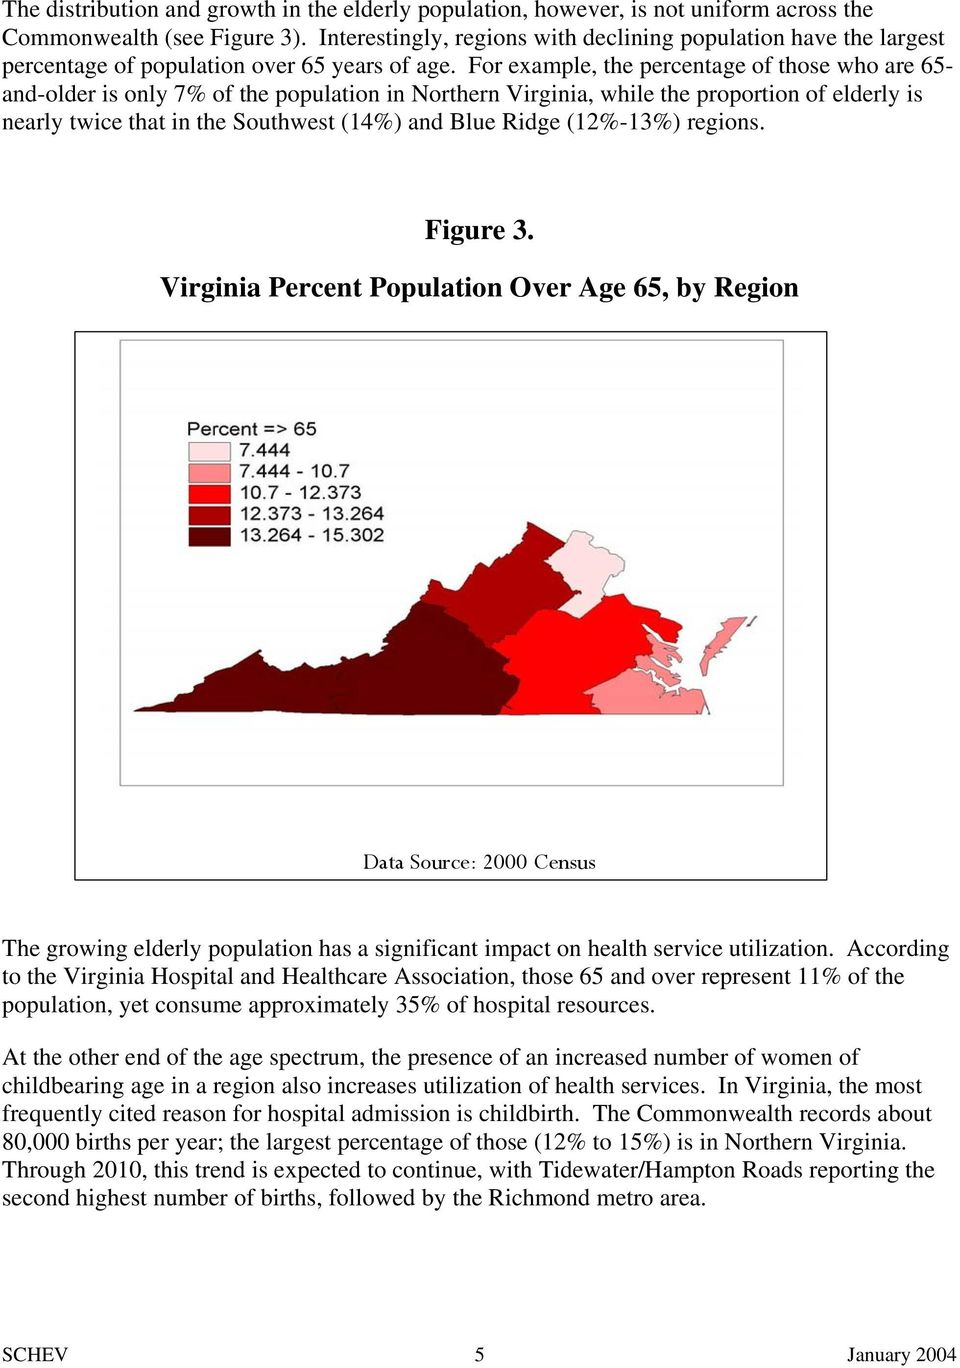 For example, the percentage of those who are 65- and-older is only 7% of the population in Northern Virginia, while the proportion of elderly is nearly twice that in the Southwest (14%) and Blue